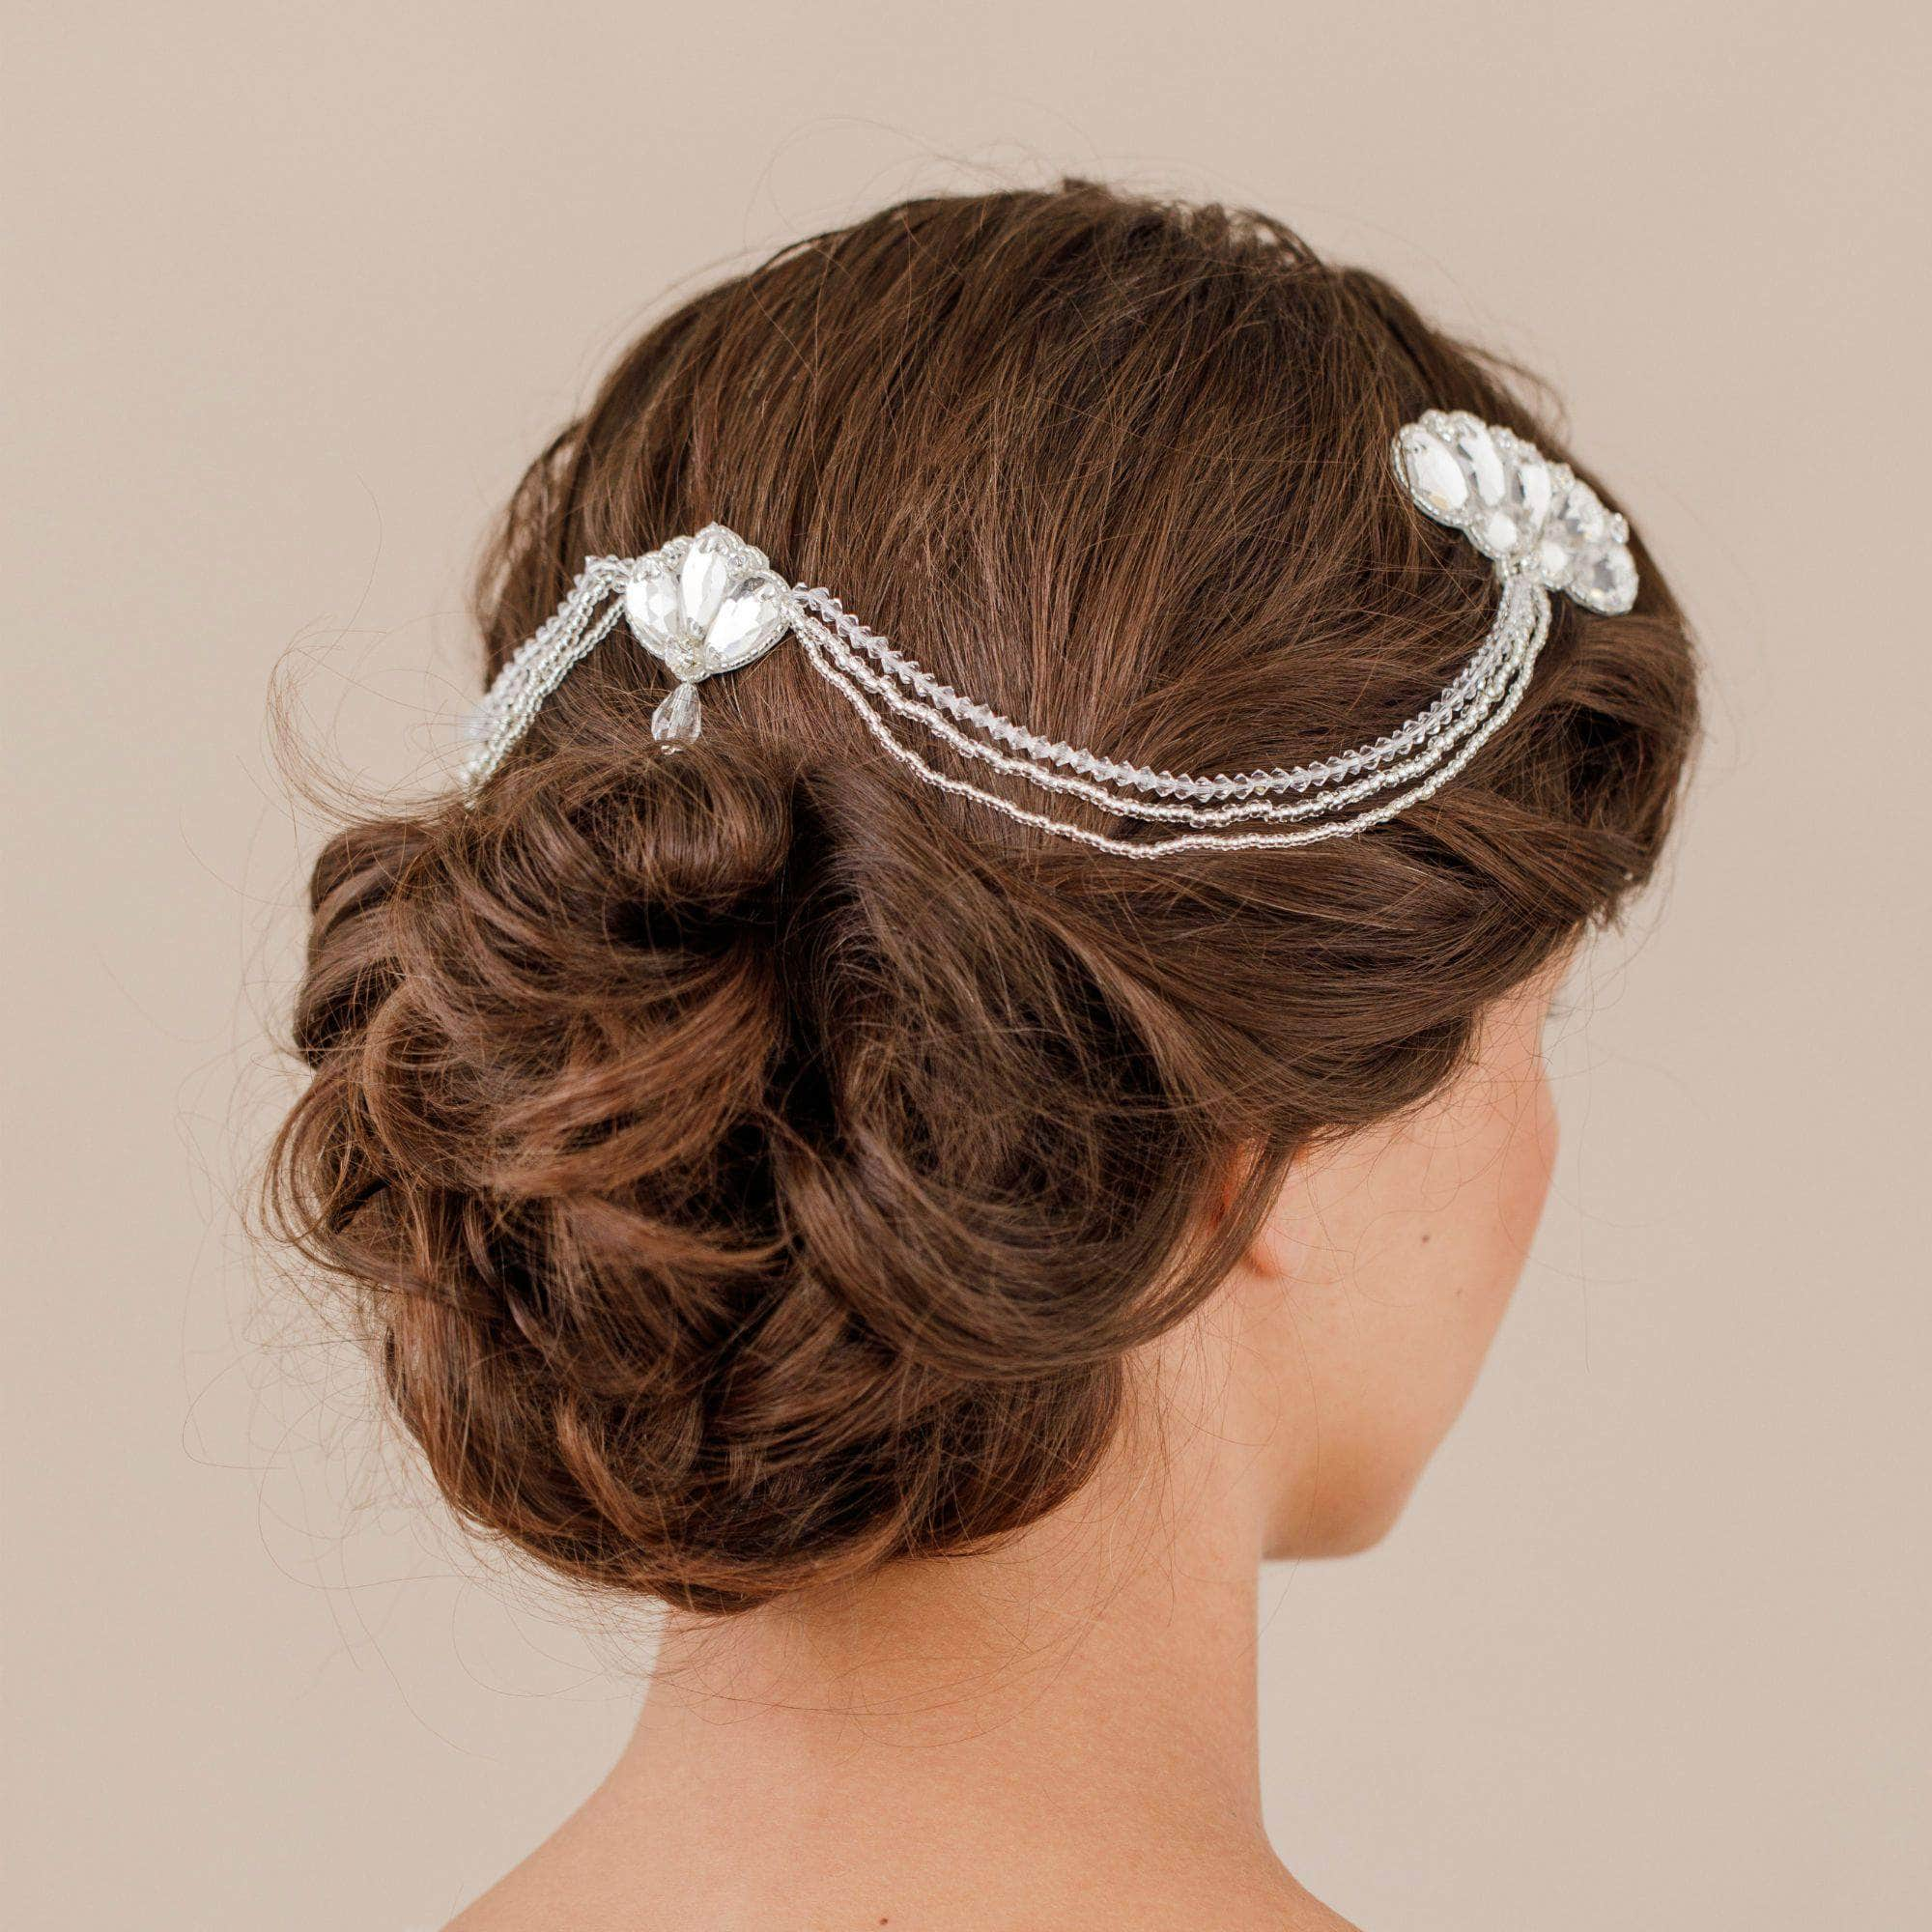 Wedding Hair Comb with Chains Silver Deco wedding hair comb with chains - 'Bernice'